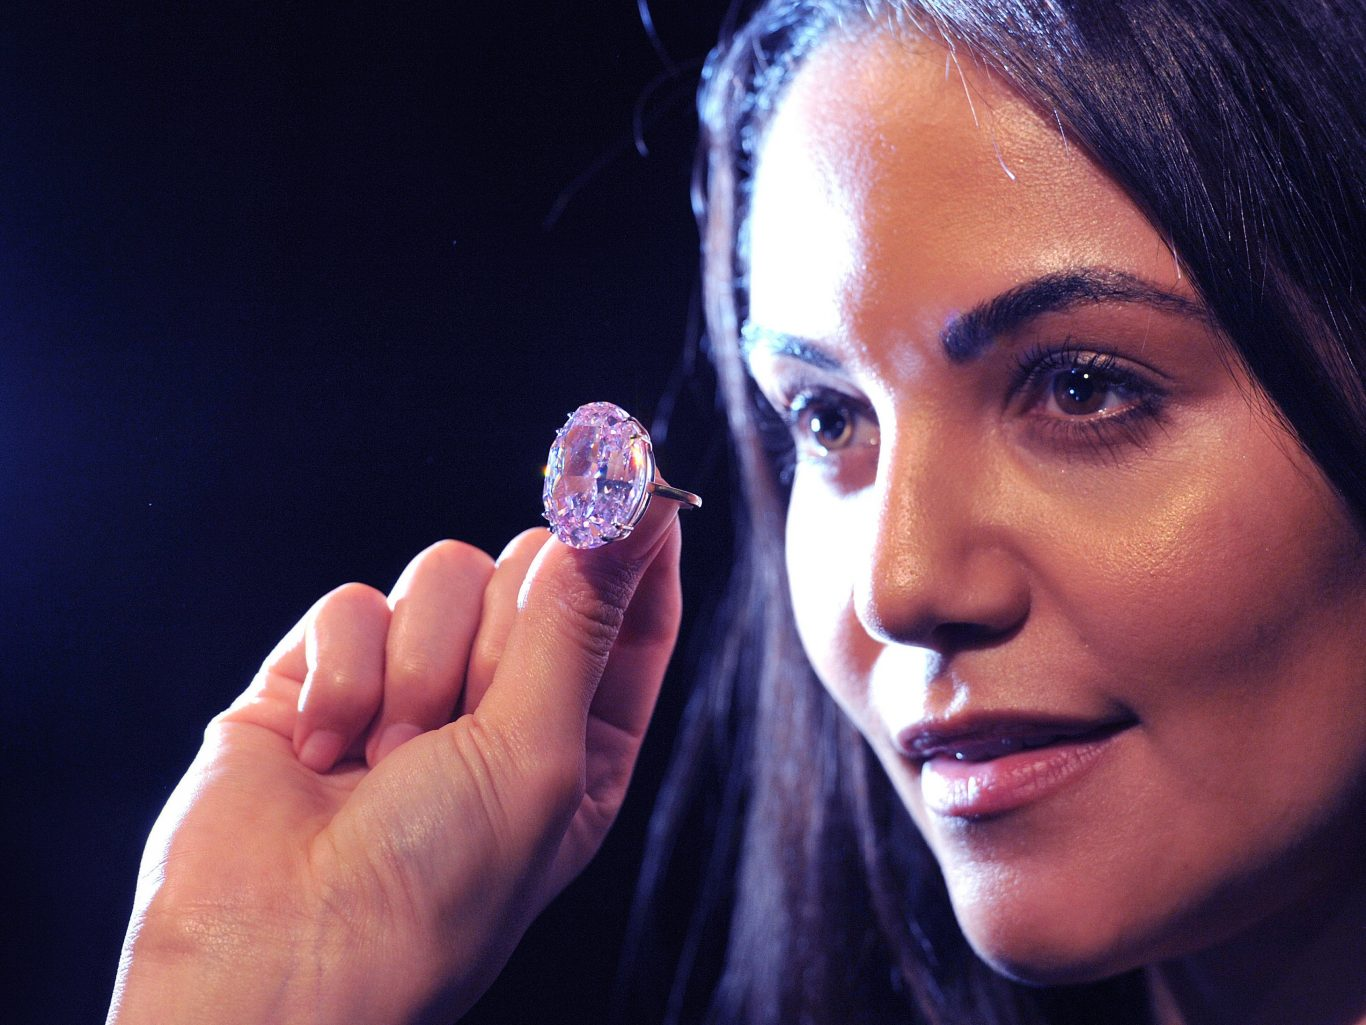 The Pink Star was mined in Africa by De Beers in 1999